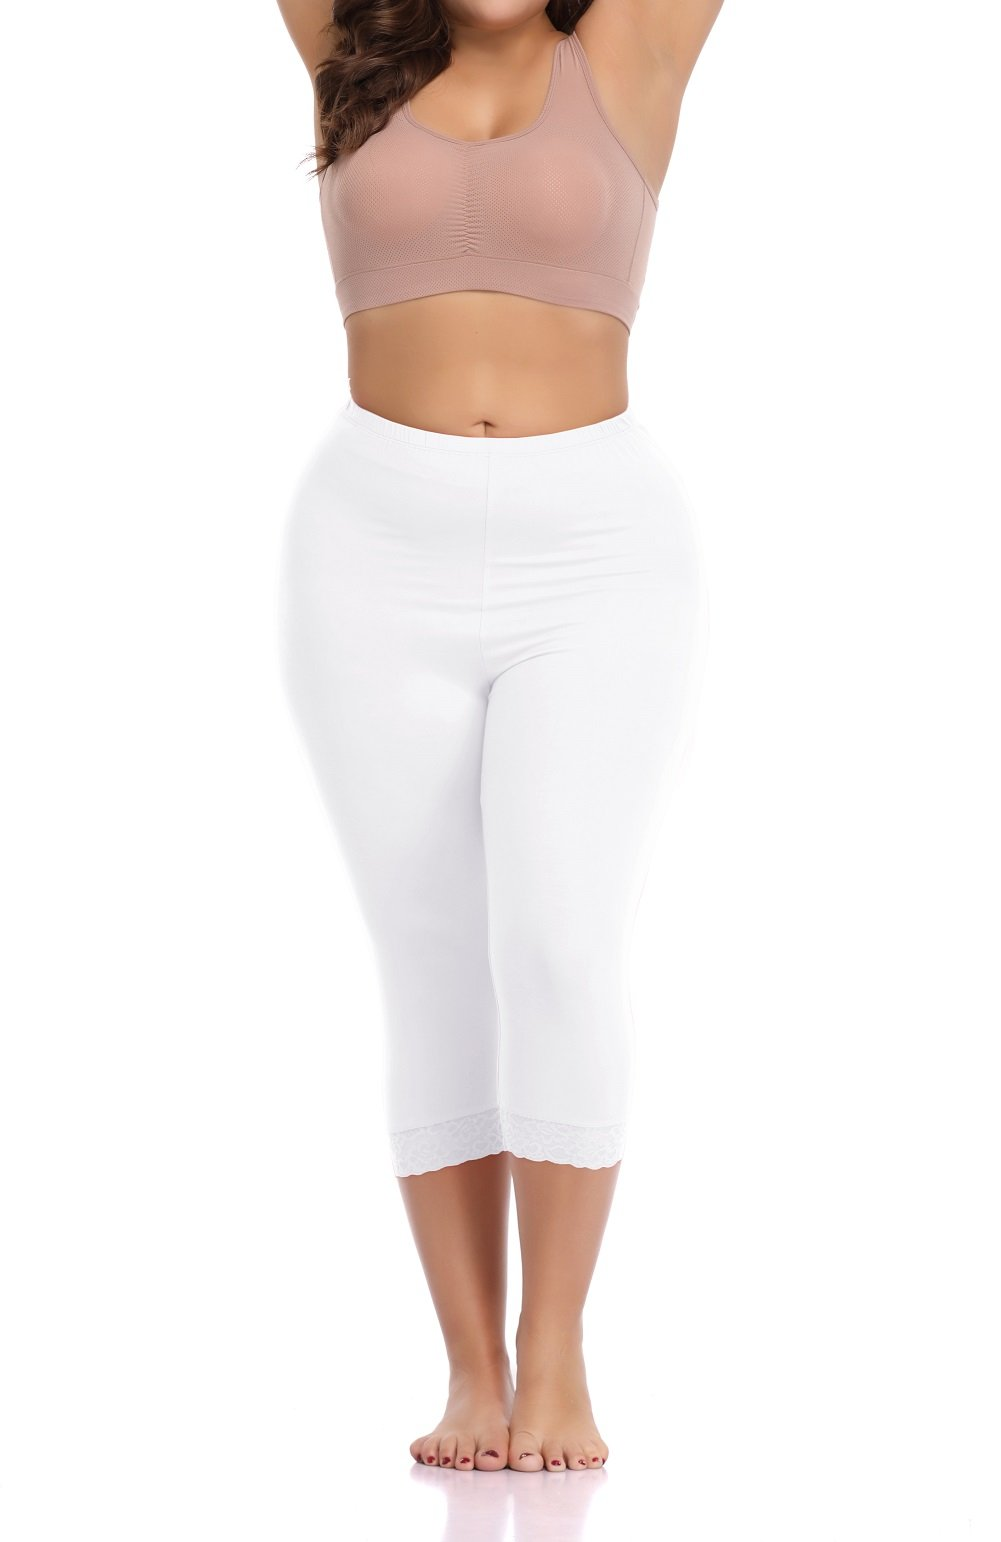 MINIVOG Women's Leggings Plus Size Stretchy Ultra Soft 3/4 Length Solid Capri with Lace Trim White XL